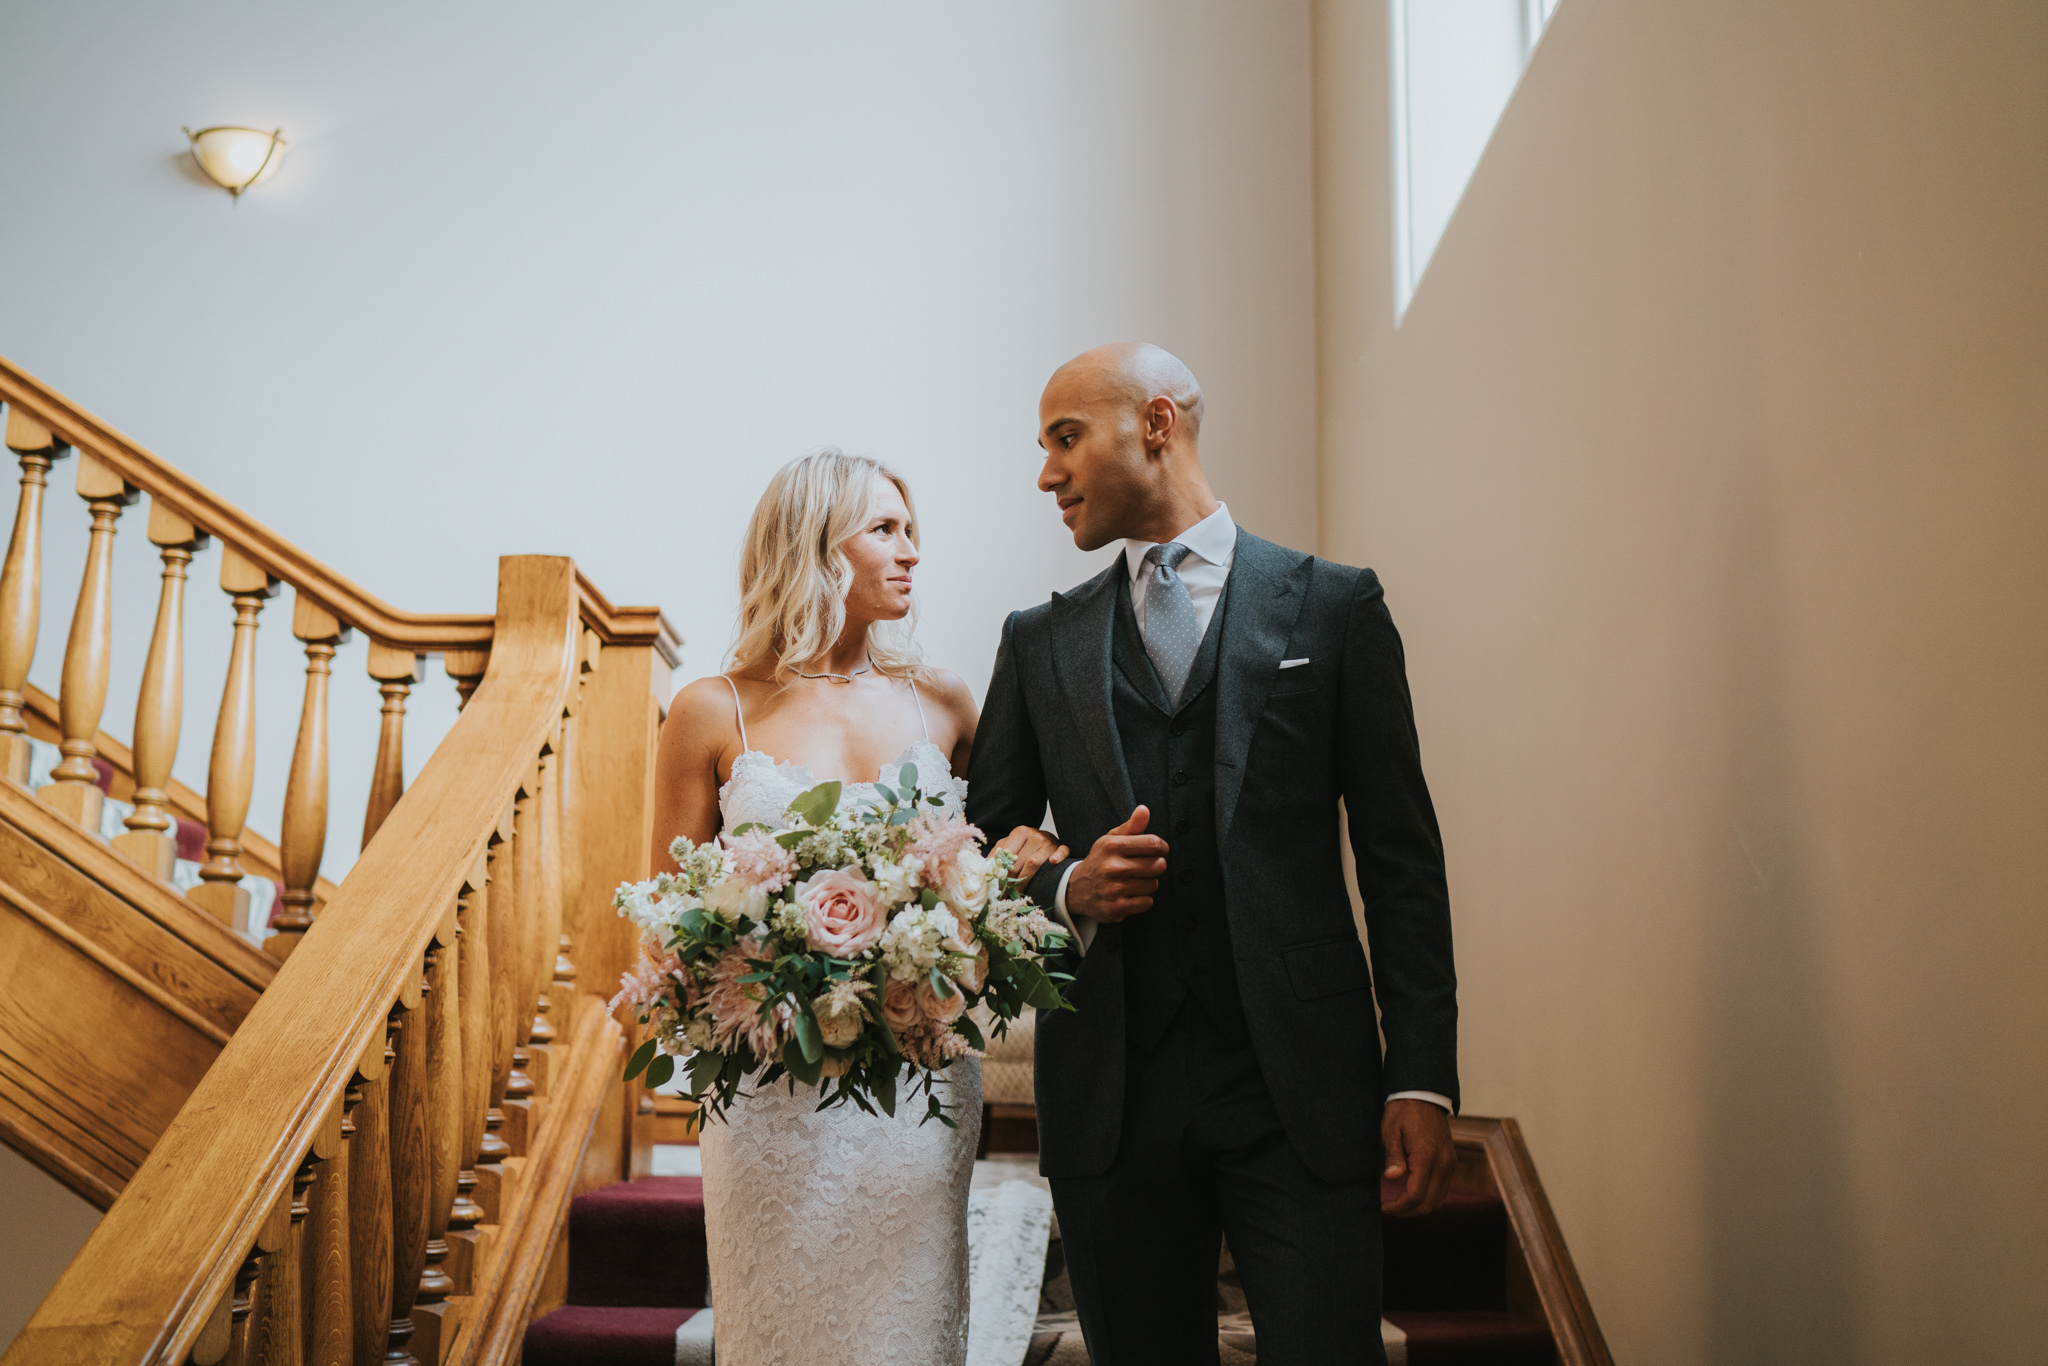 intimate-english-church-wedding-sarah-alex-colchester-essex-grace-elizabeth-colchester-essex-alternative-wedding-lifestyle-photographer-essex-suffolk-norfolk-devon (11 of 92).jpg